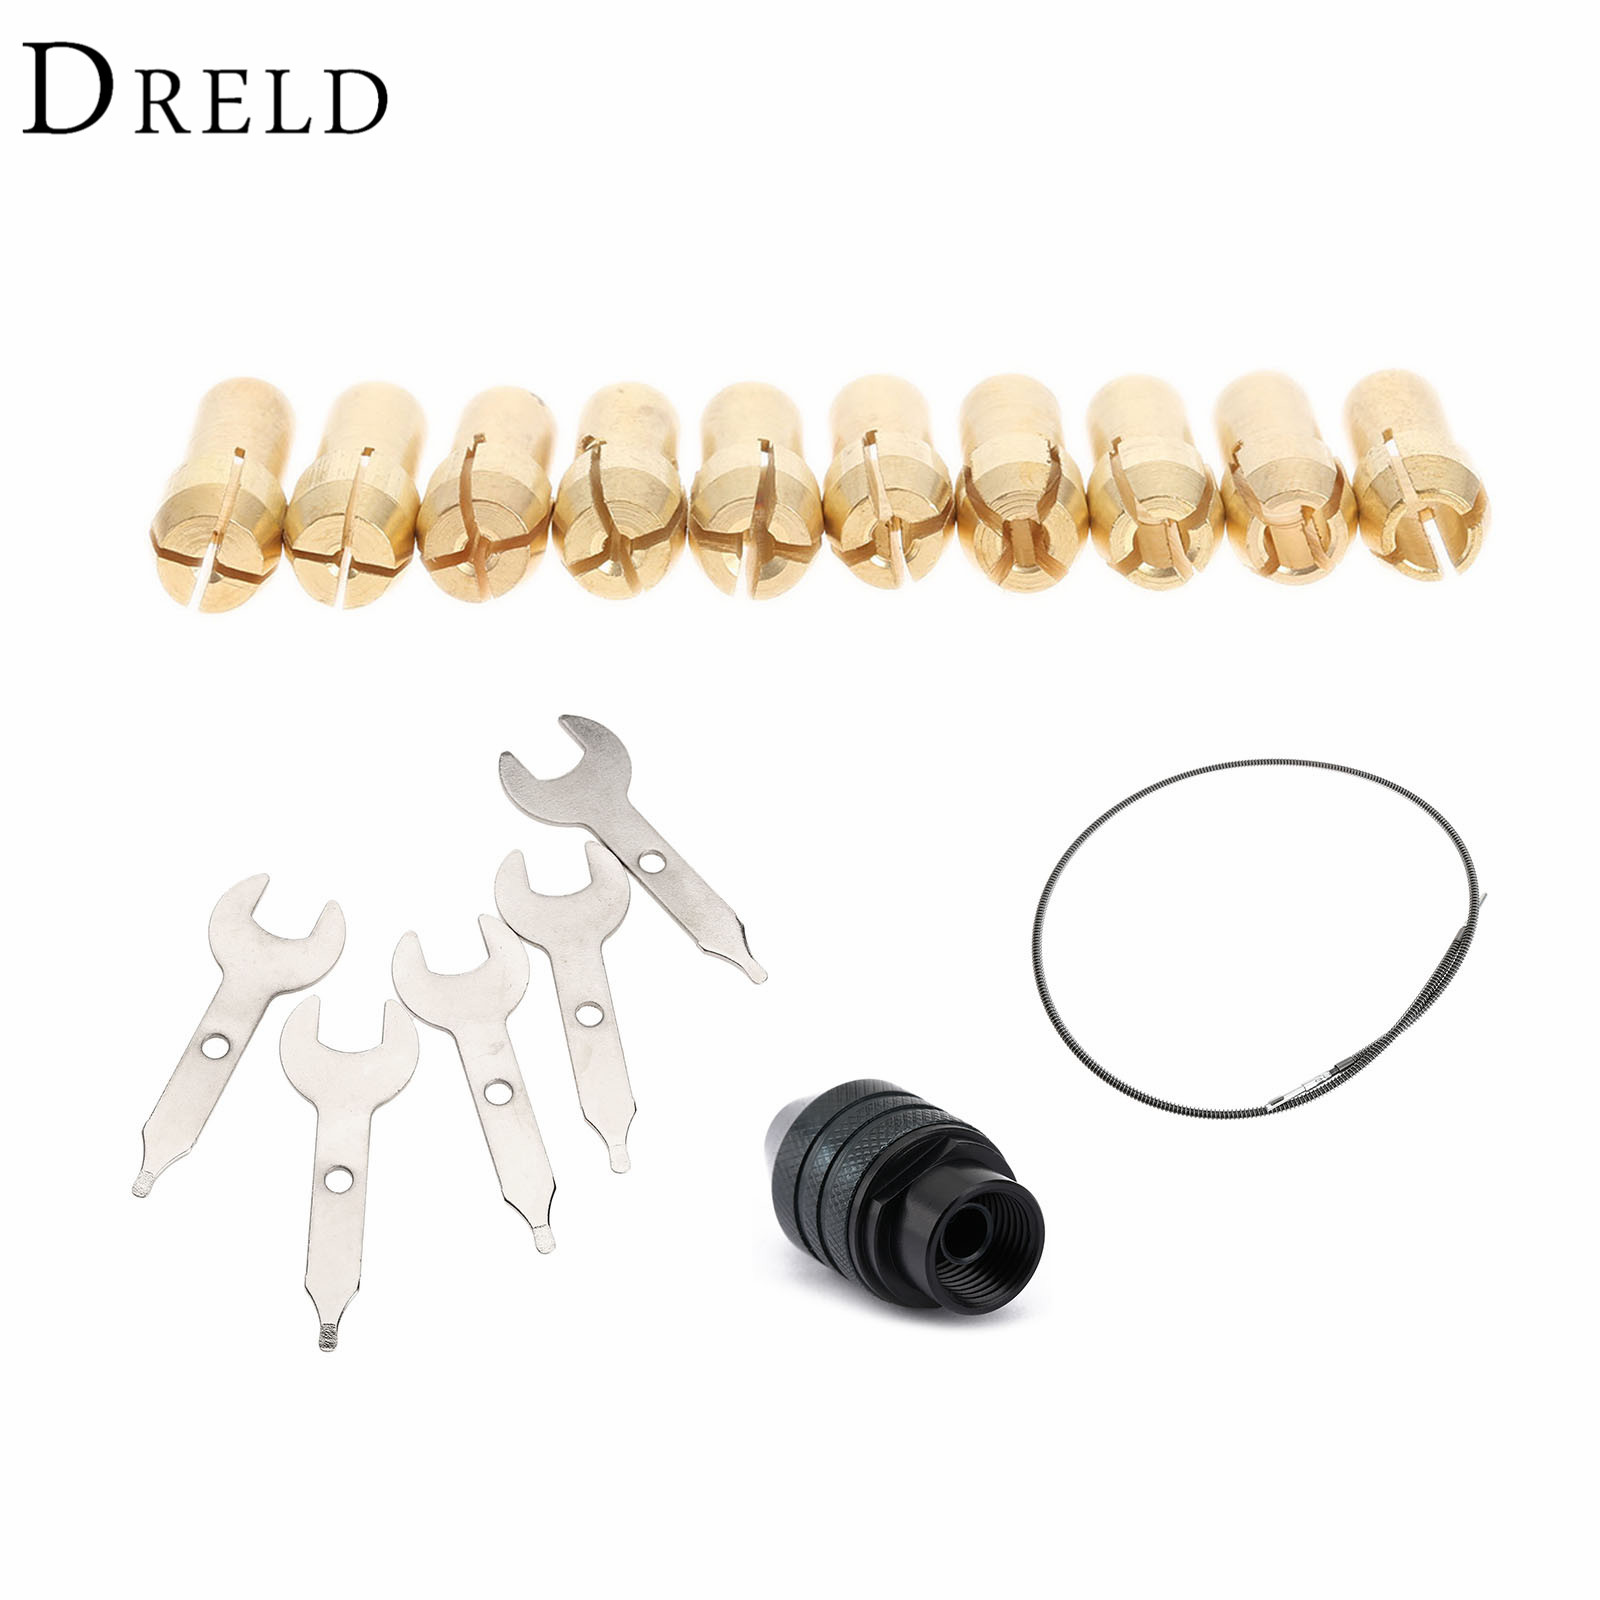 0.5-3.2mm Brass Collets Tools+ Multi Keyless Drill Chuck +Flexible Shaft +Grinder Spanner Dremel Rotary Accessories Grinder Tool flexible extension cord shaft rotary grinder tool m8 keyless chuck aluminum flex shaft for grinding tools